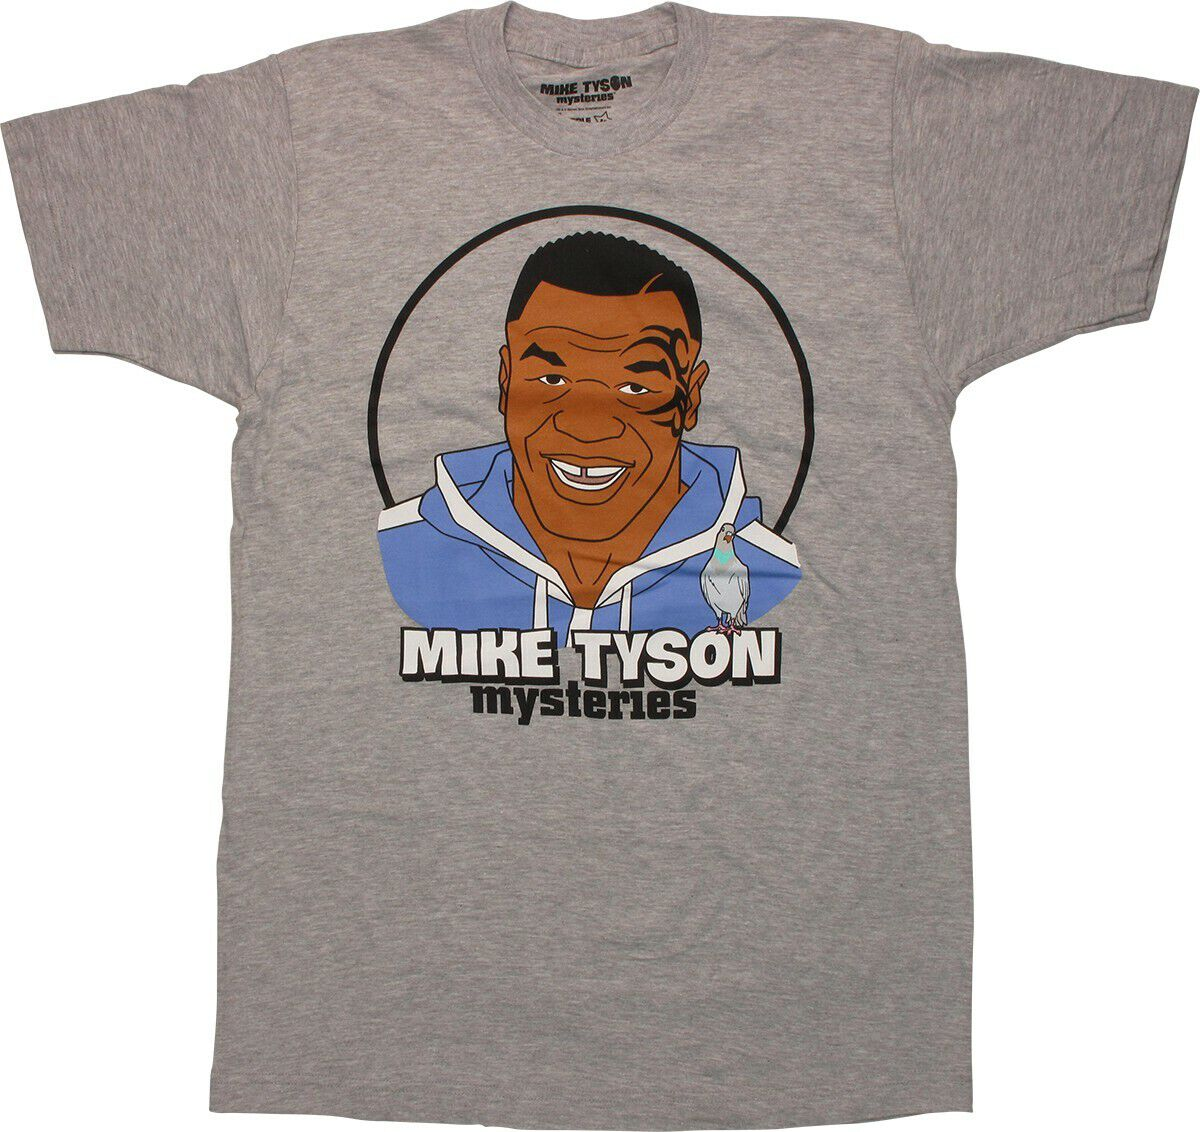 Mike Tyson Mysteries Big Smile T-Shirt